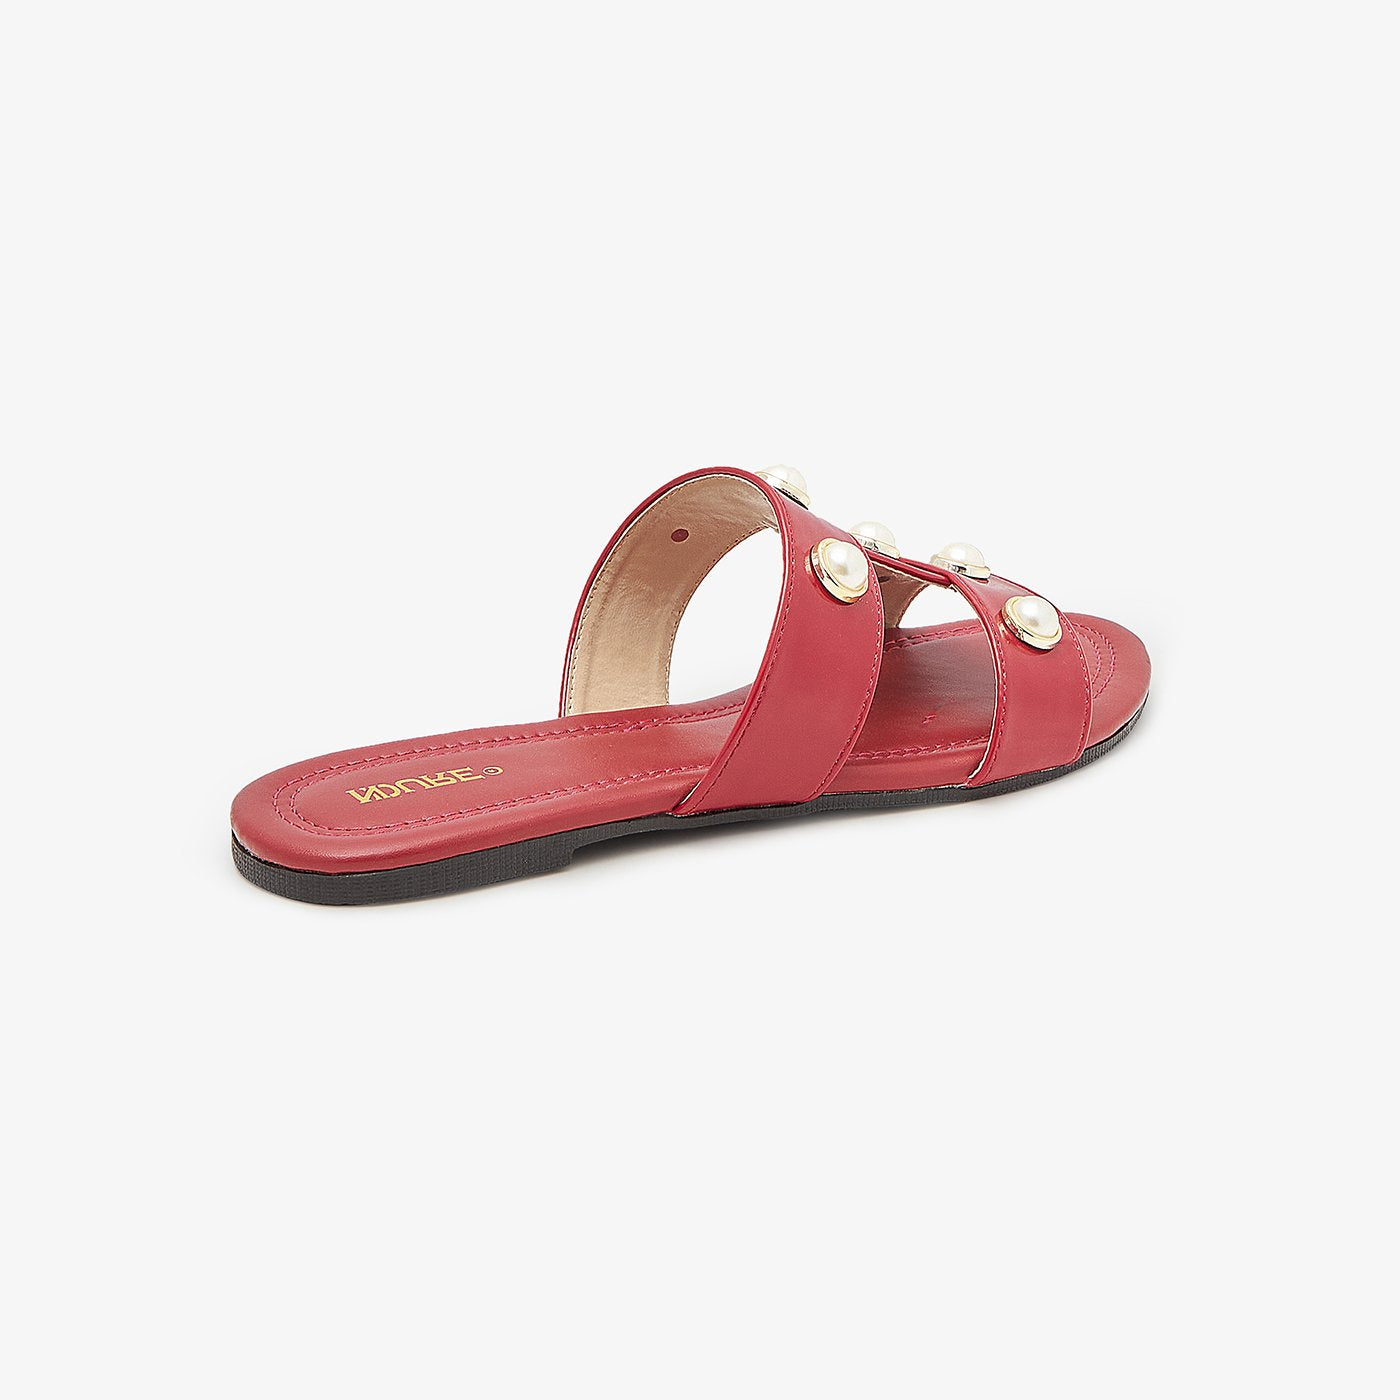 H-Strap Flats for Women